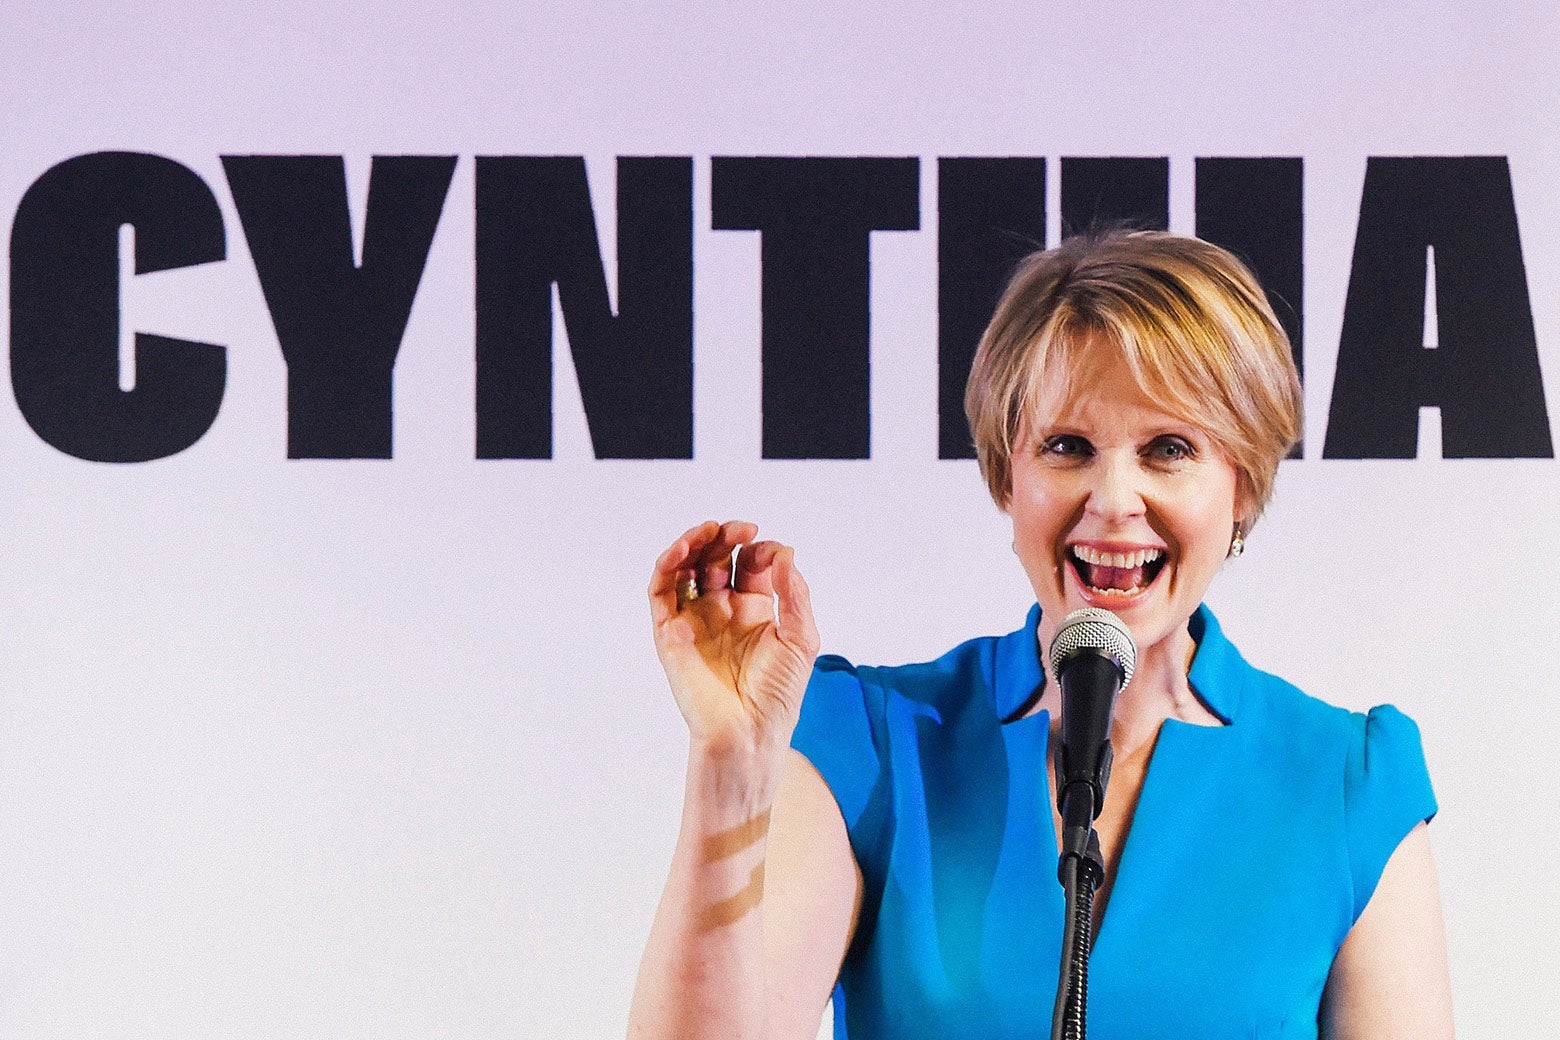 Cynthia Nixon standing in front of a campaign sign that says Cynthia.